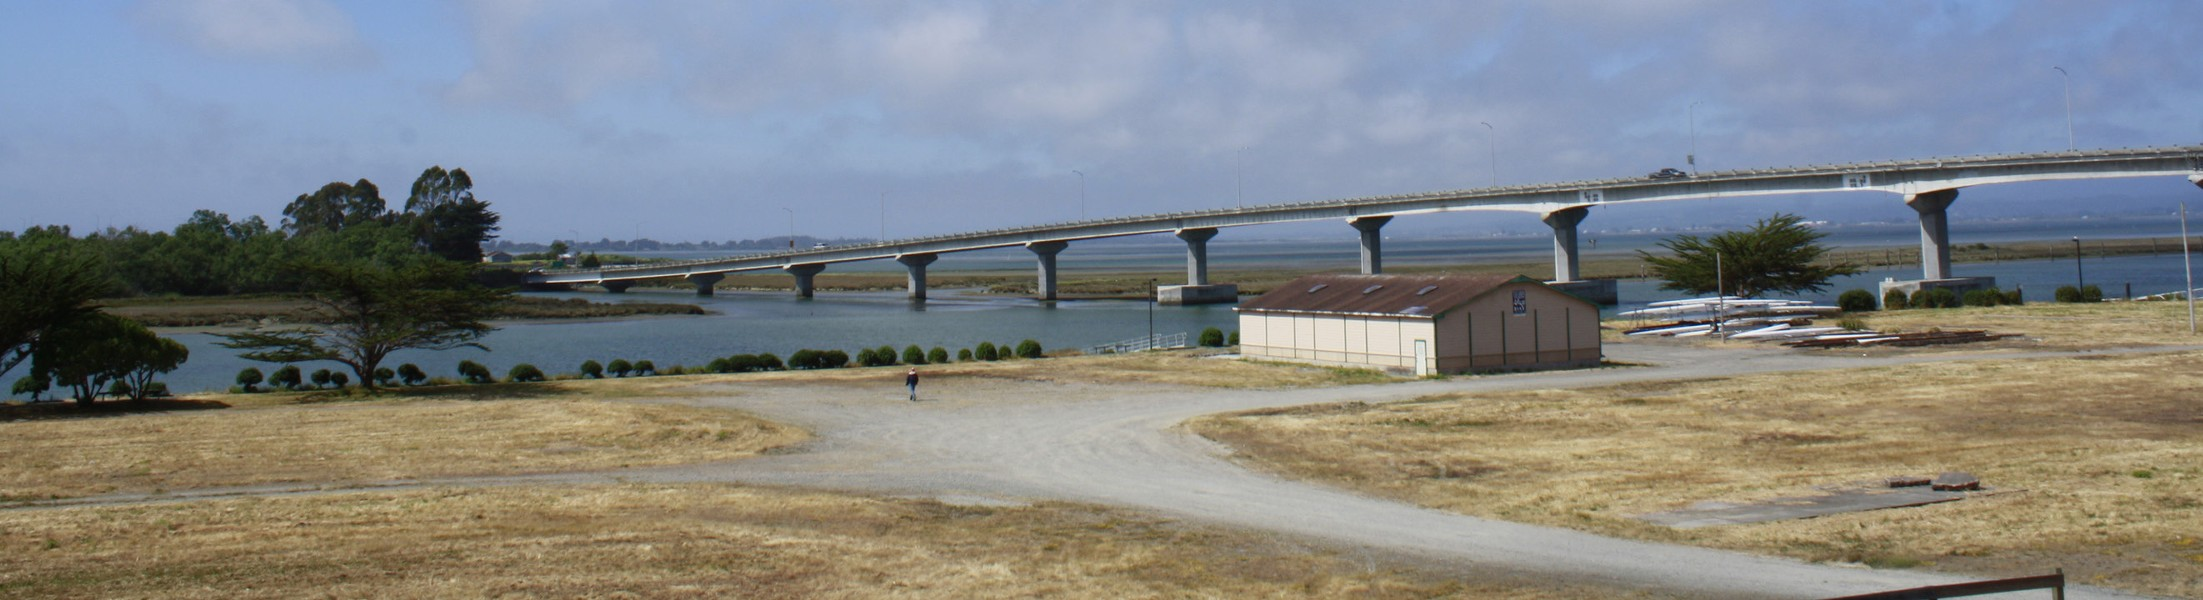 Eureka waterfront, Samoa Bridge and Humboldt Bay Rowing Association Building - PHOTO BY ZACH ST. GEORGE